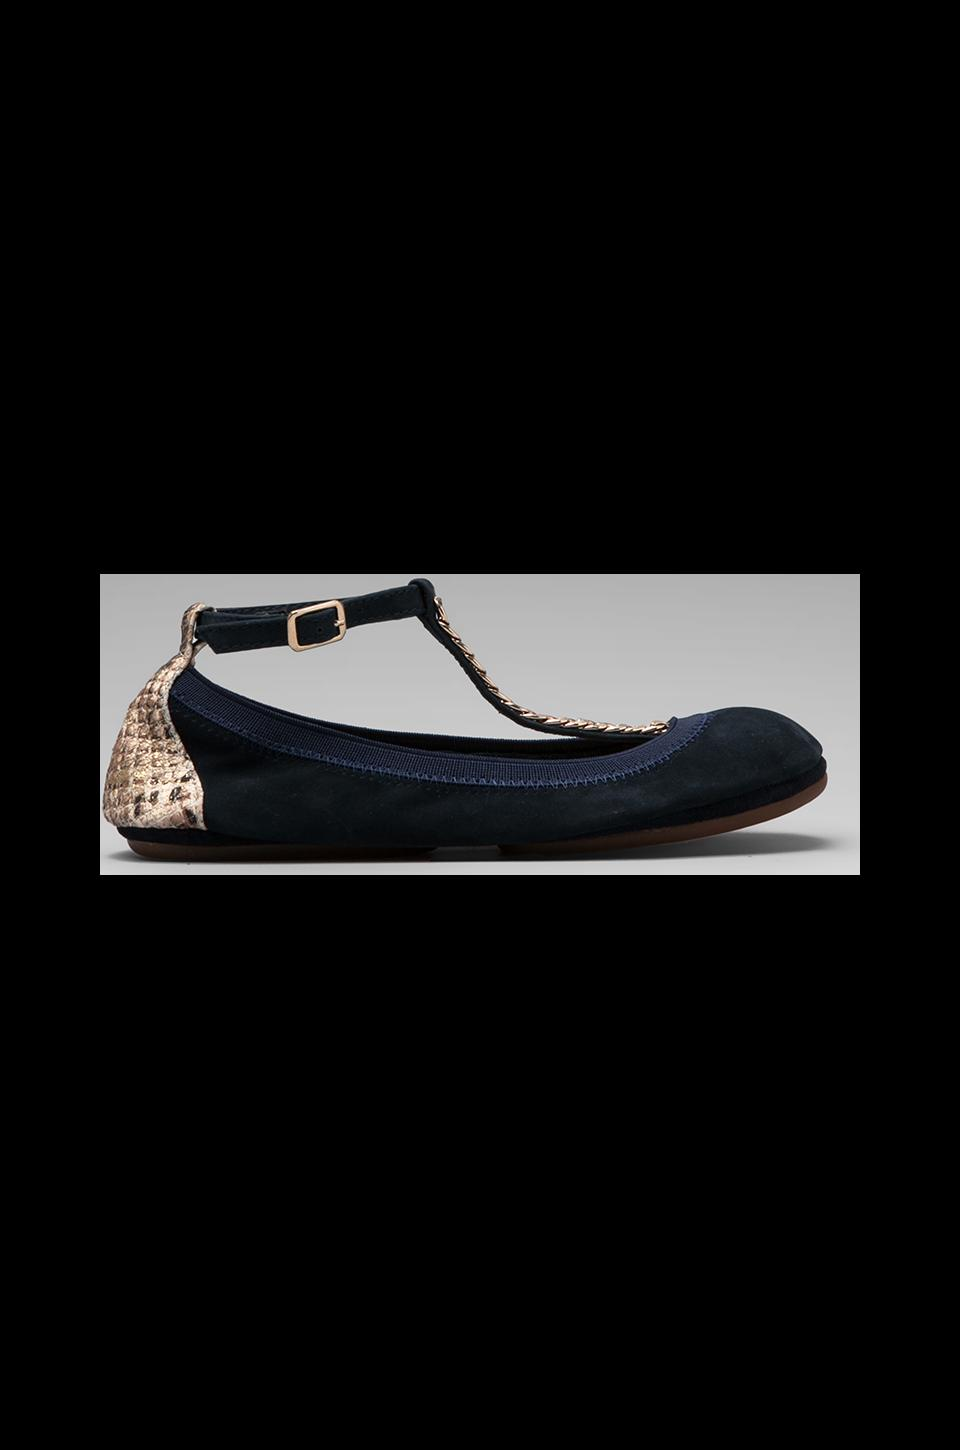 Yosi Samra Two Tone Flat in Midnight/Gold Serpent